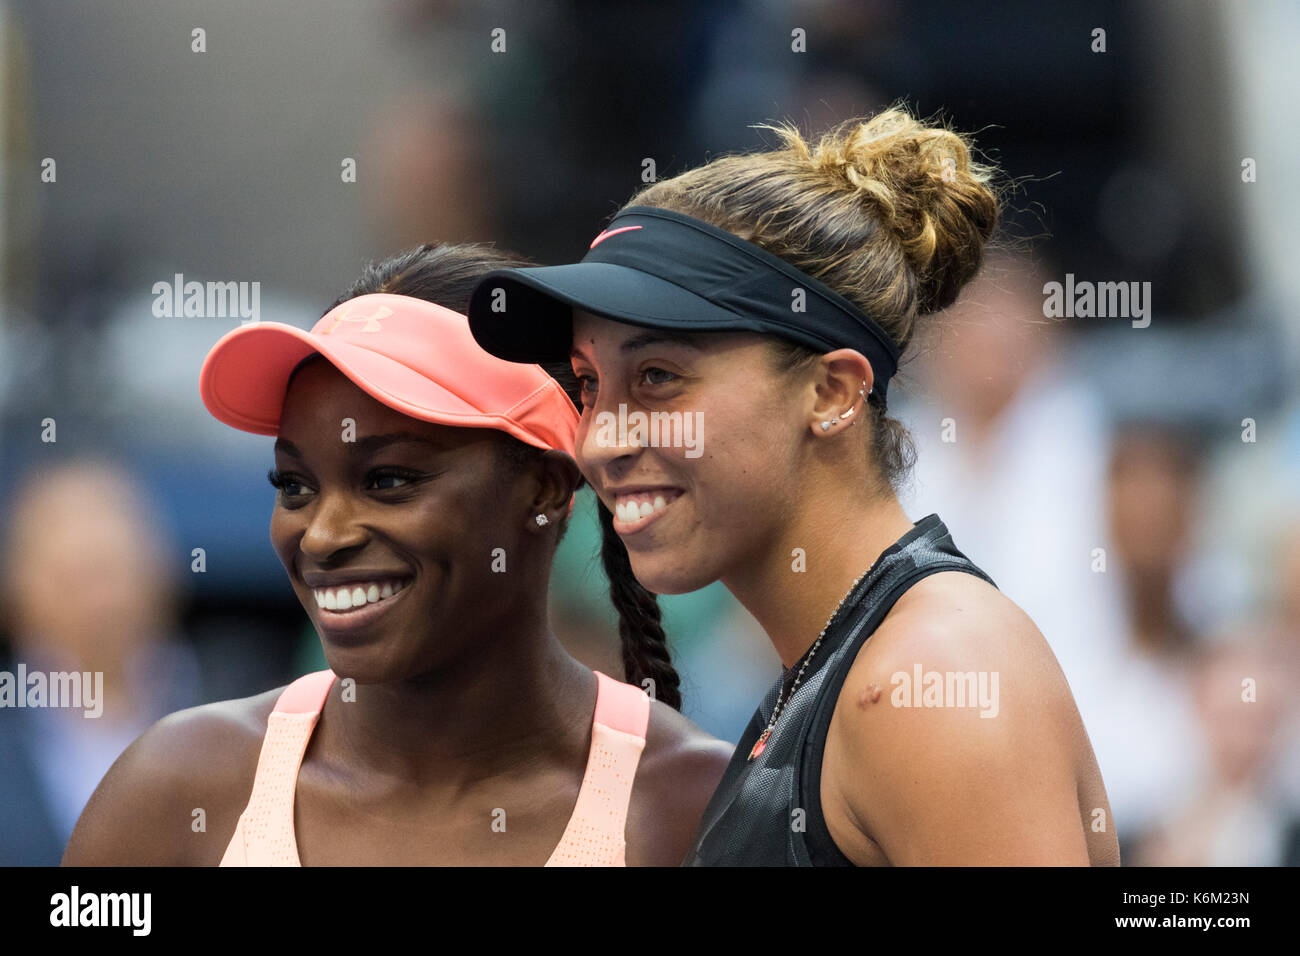 Sloane Stephens (USA) and Madison Keys (USA) prior to the Women's Singles Final  at the 2017 US Open Tennis Championships - Stock Image